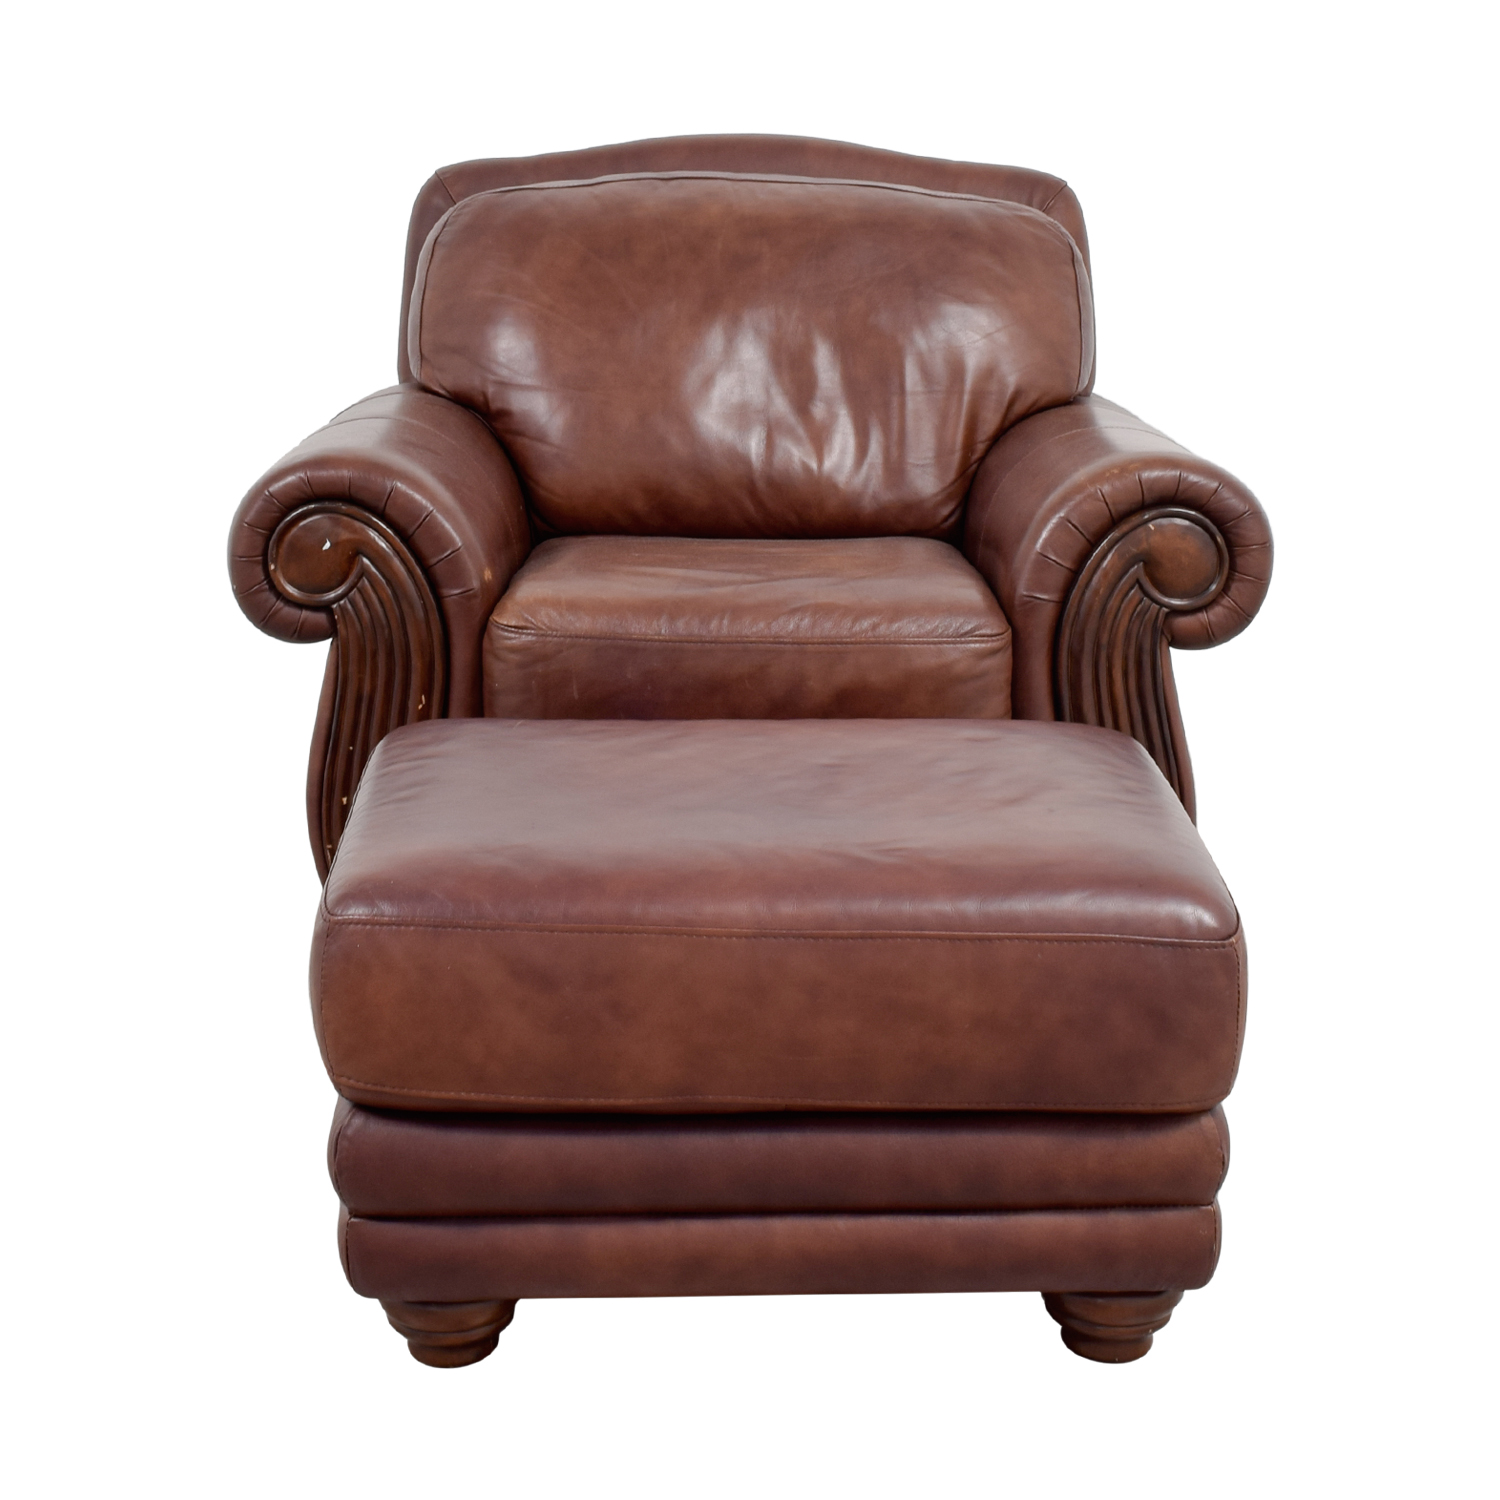 Go Chair Brown Leather Chair With Ottoman Tyres2c